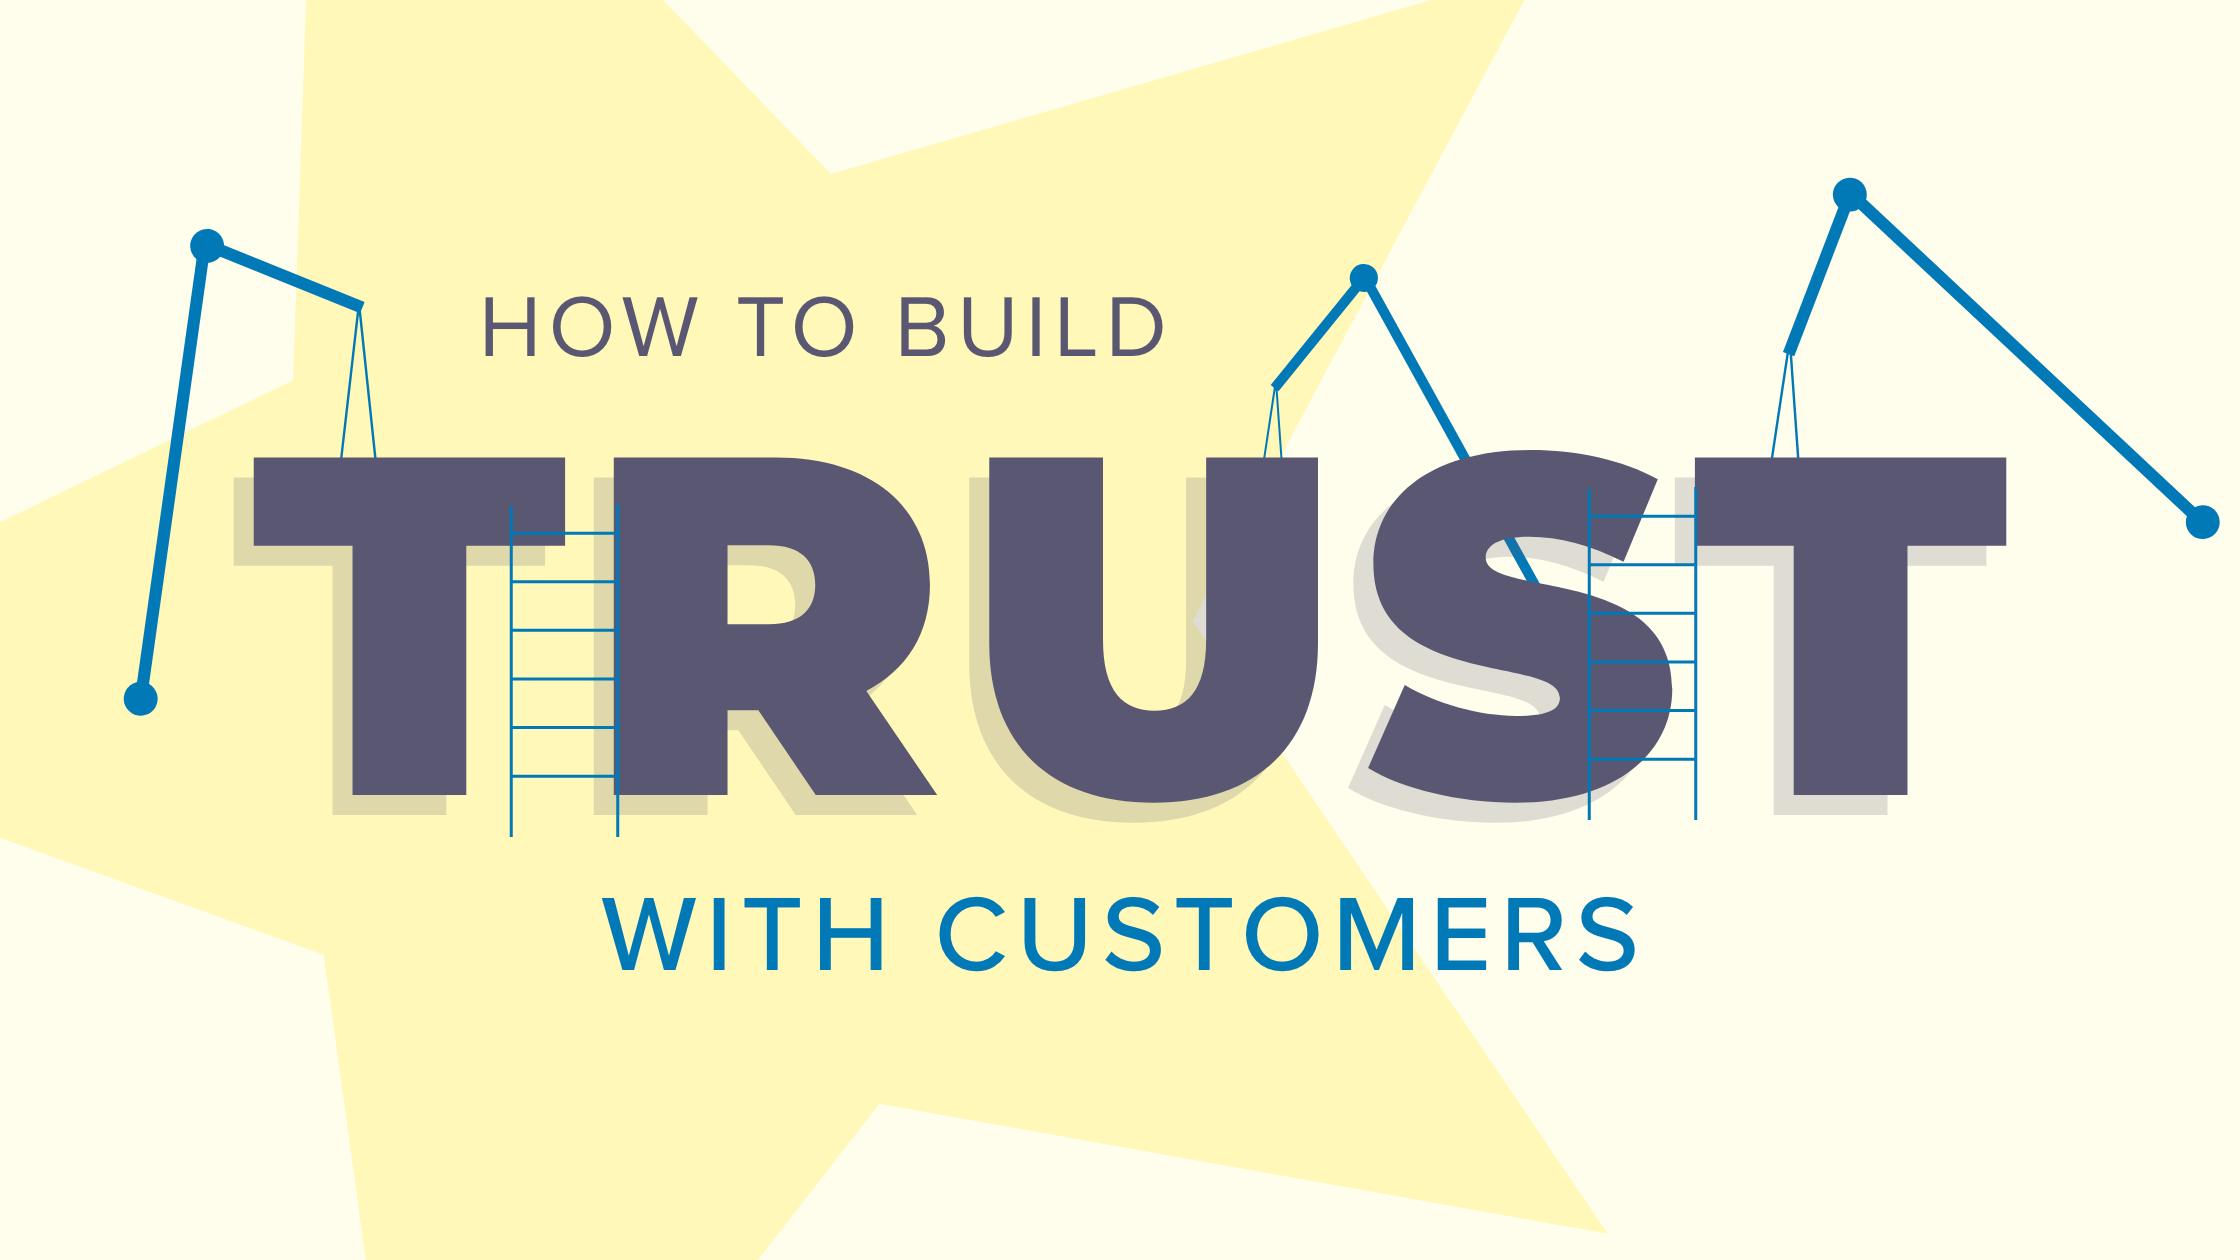 Build Trust with Customers